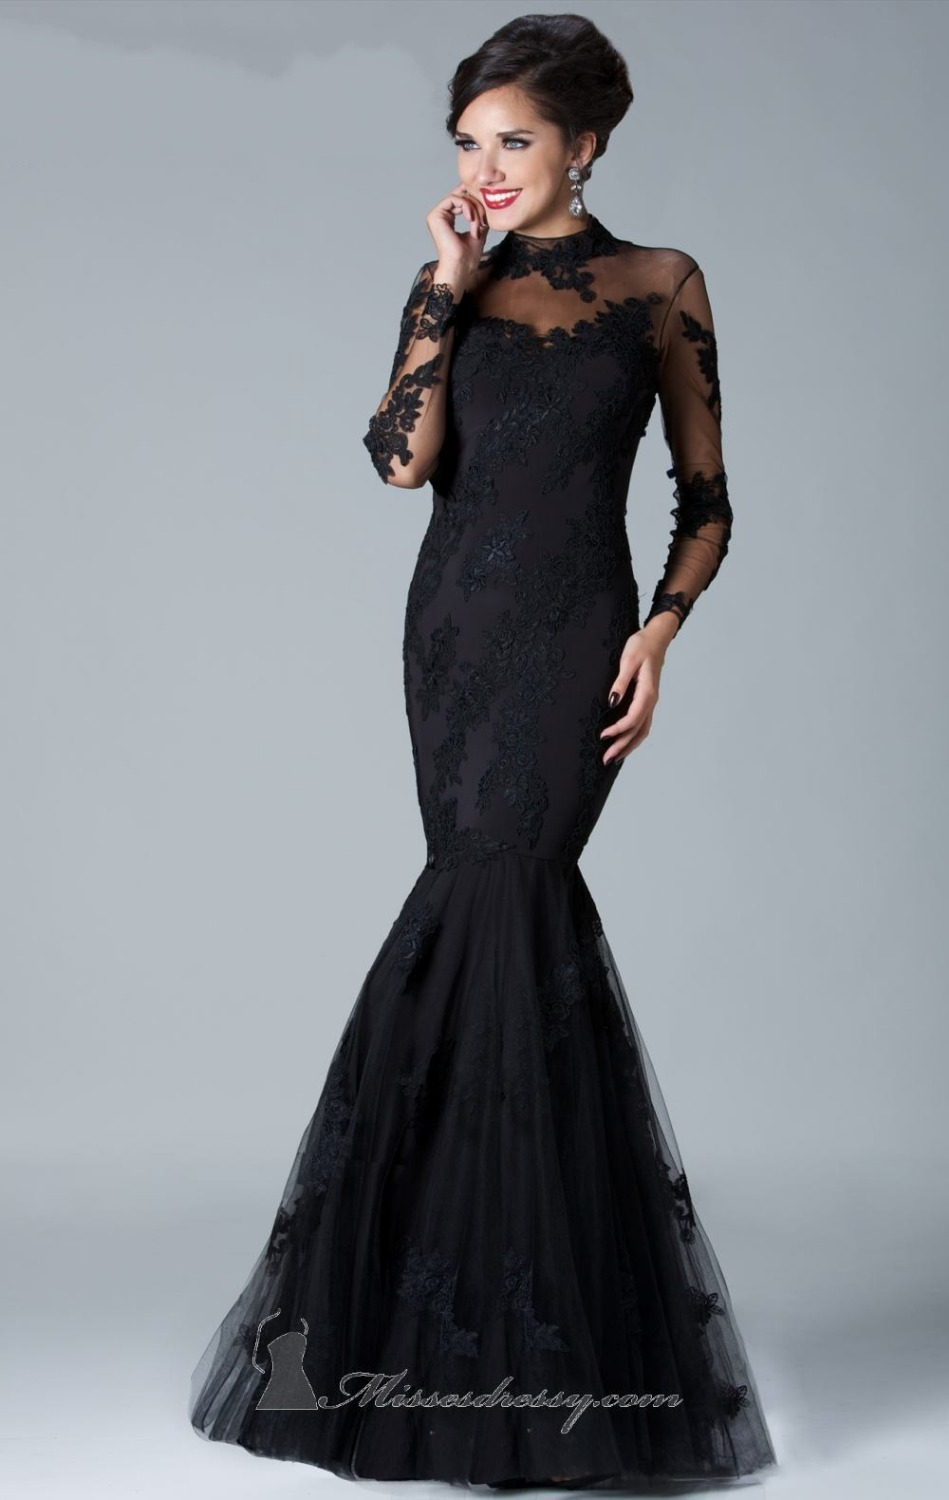 Compare Prices on Long Corset Dress- Online Shopping/Buy Low Price ...